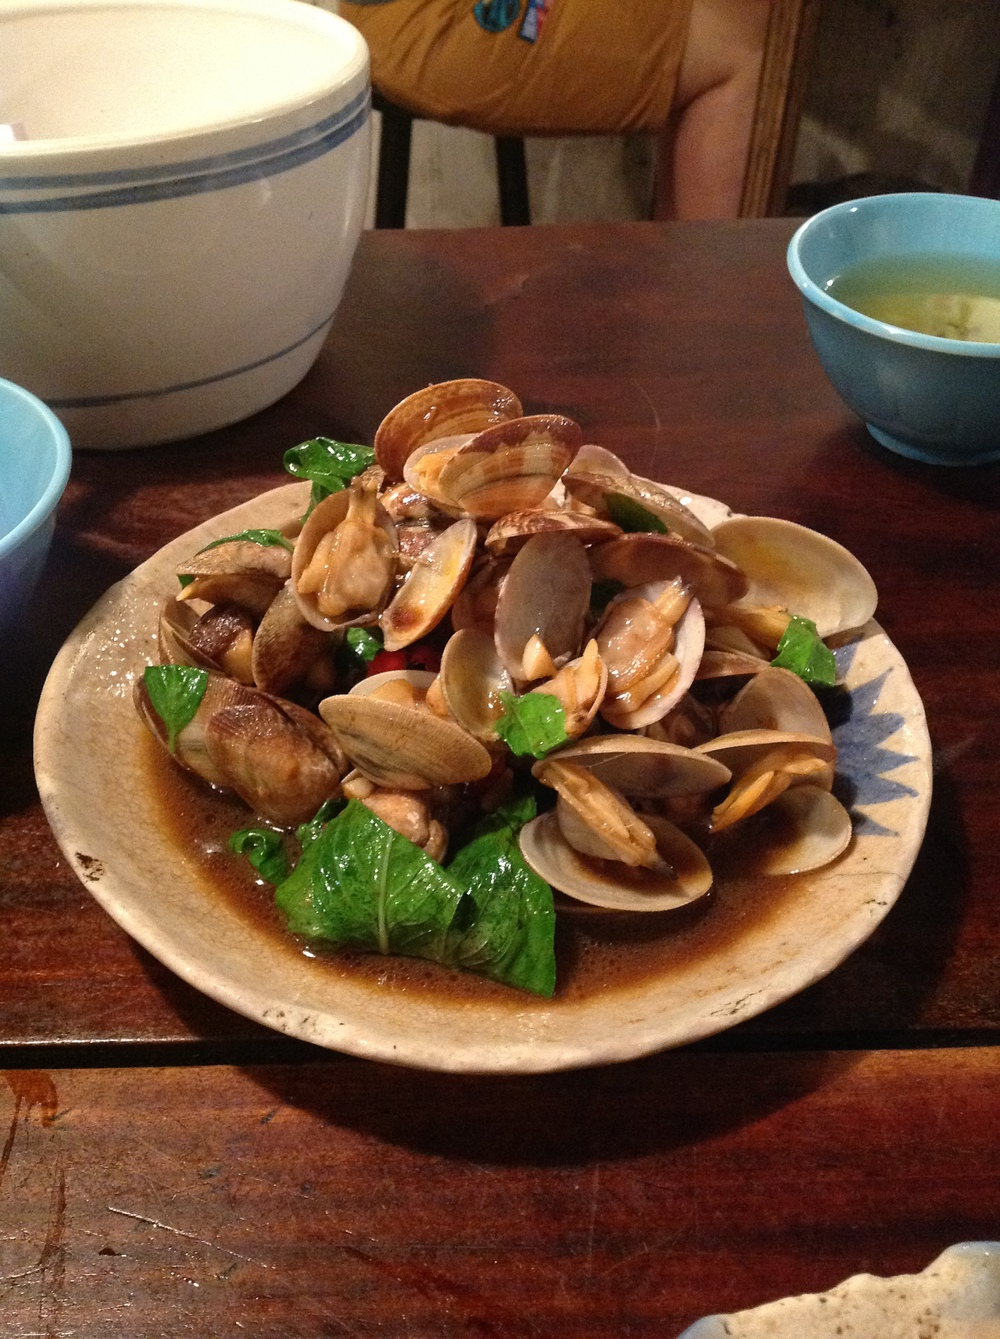 Stir Fried Clams (炒蛤仔)